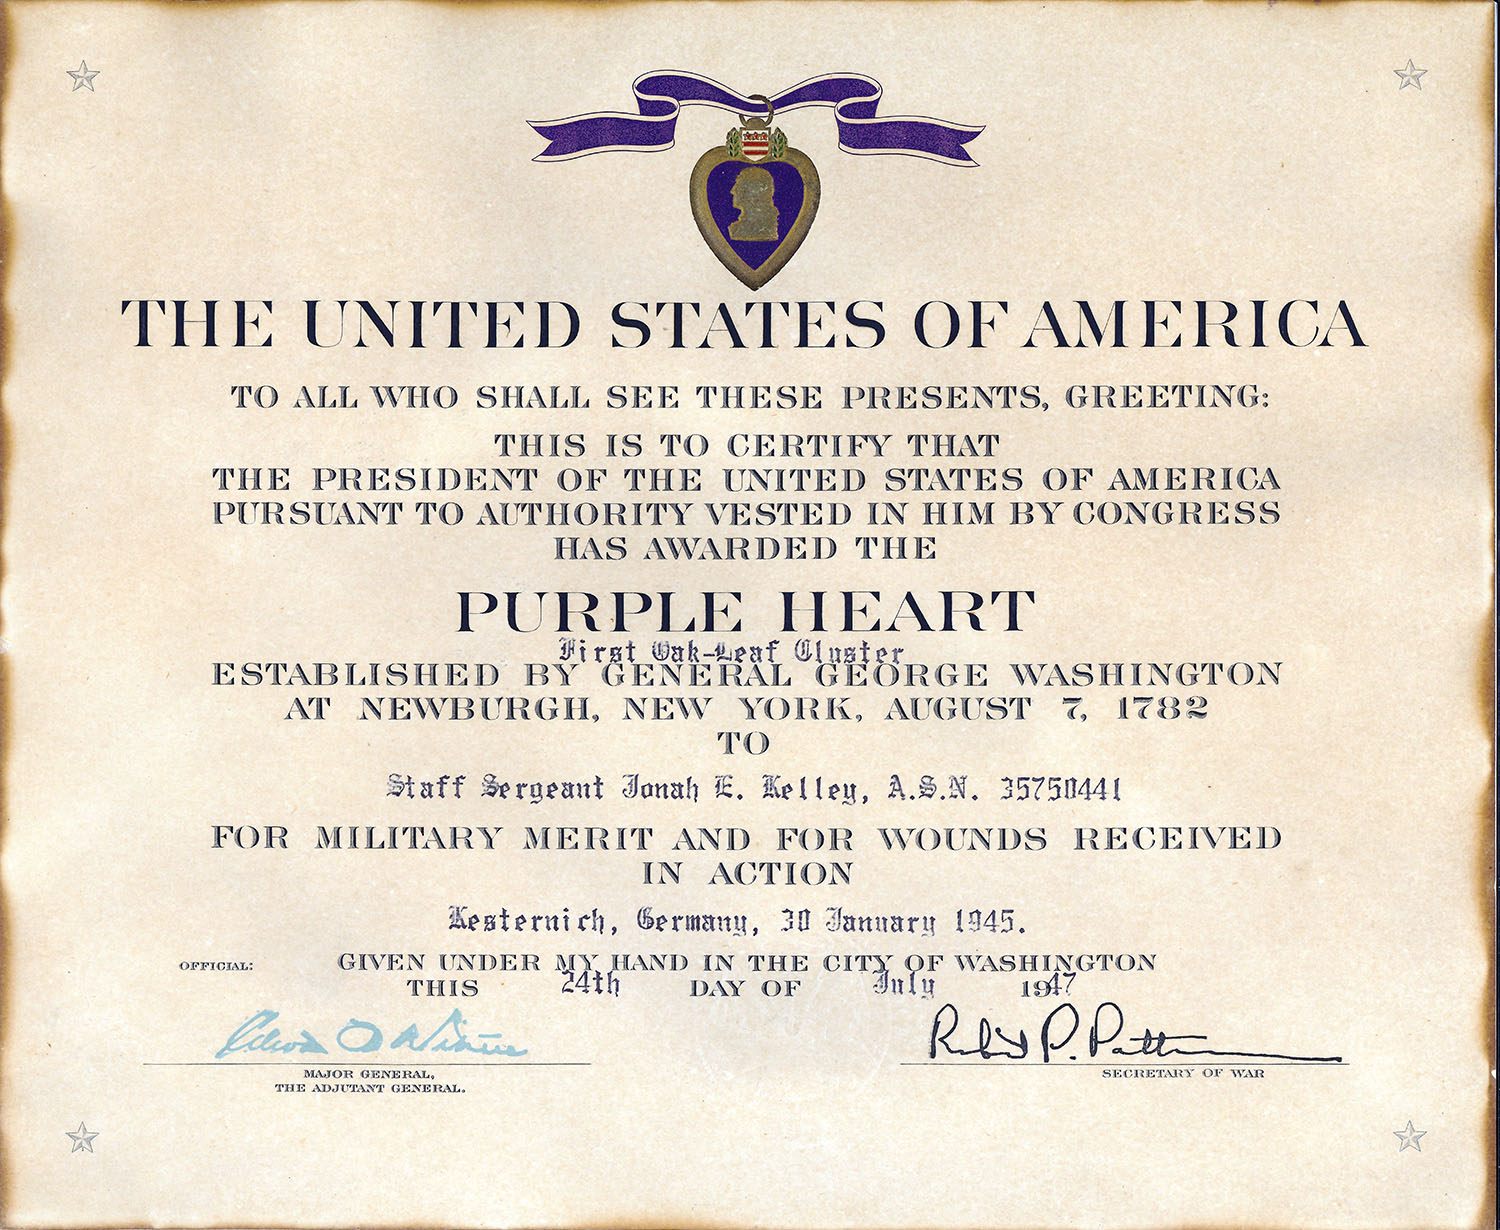 Purple Heart Citation